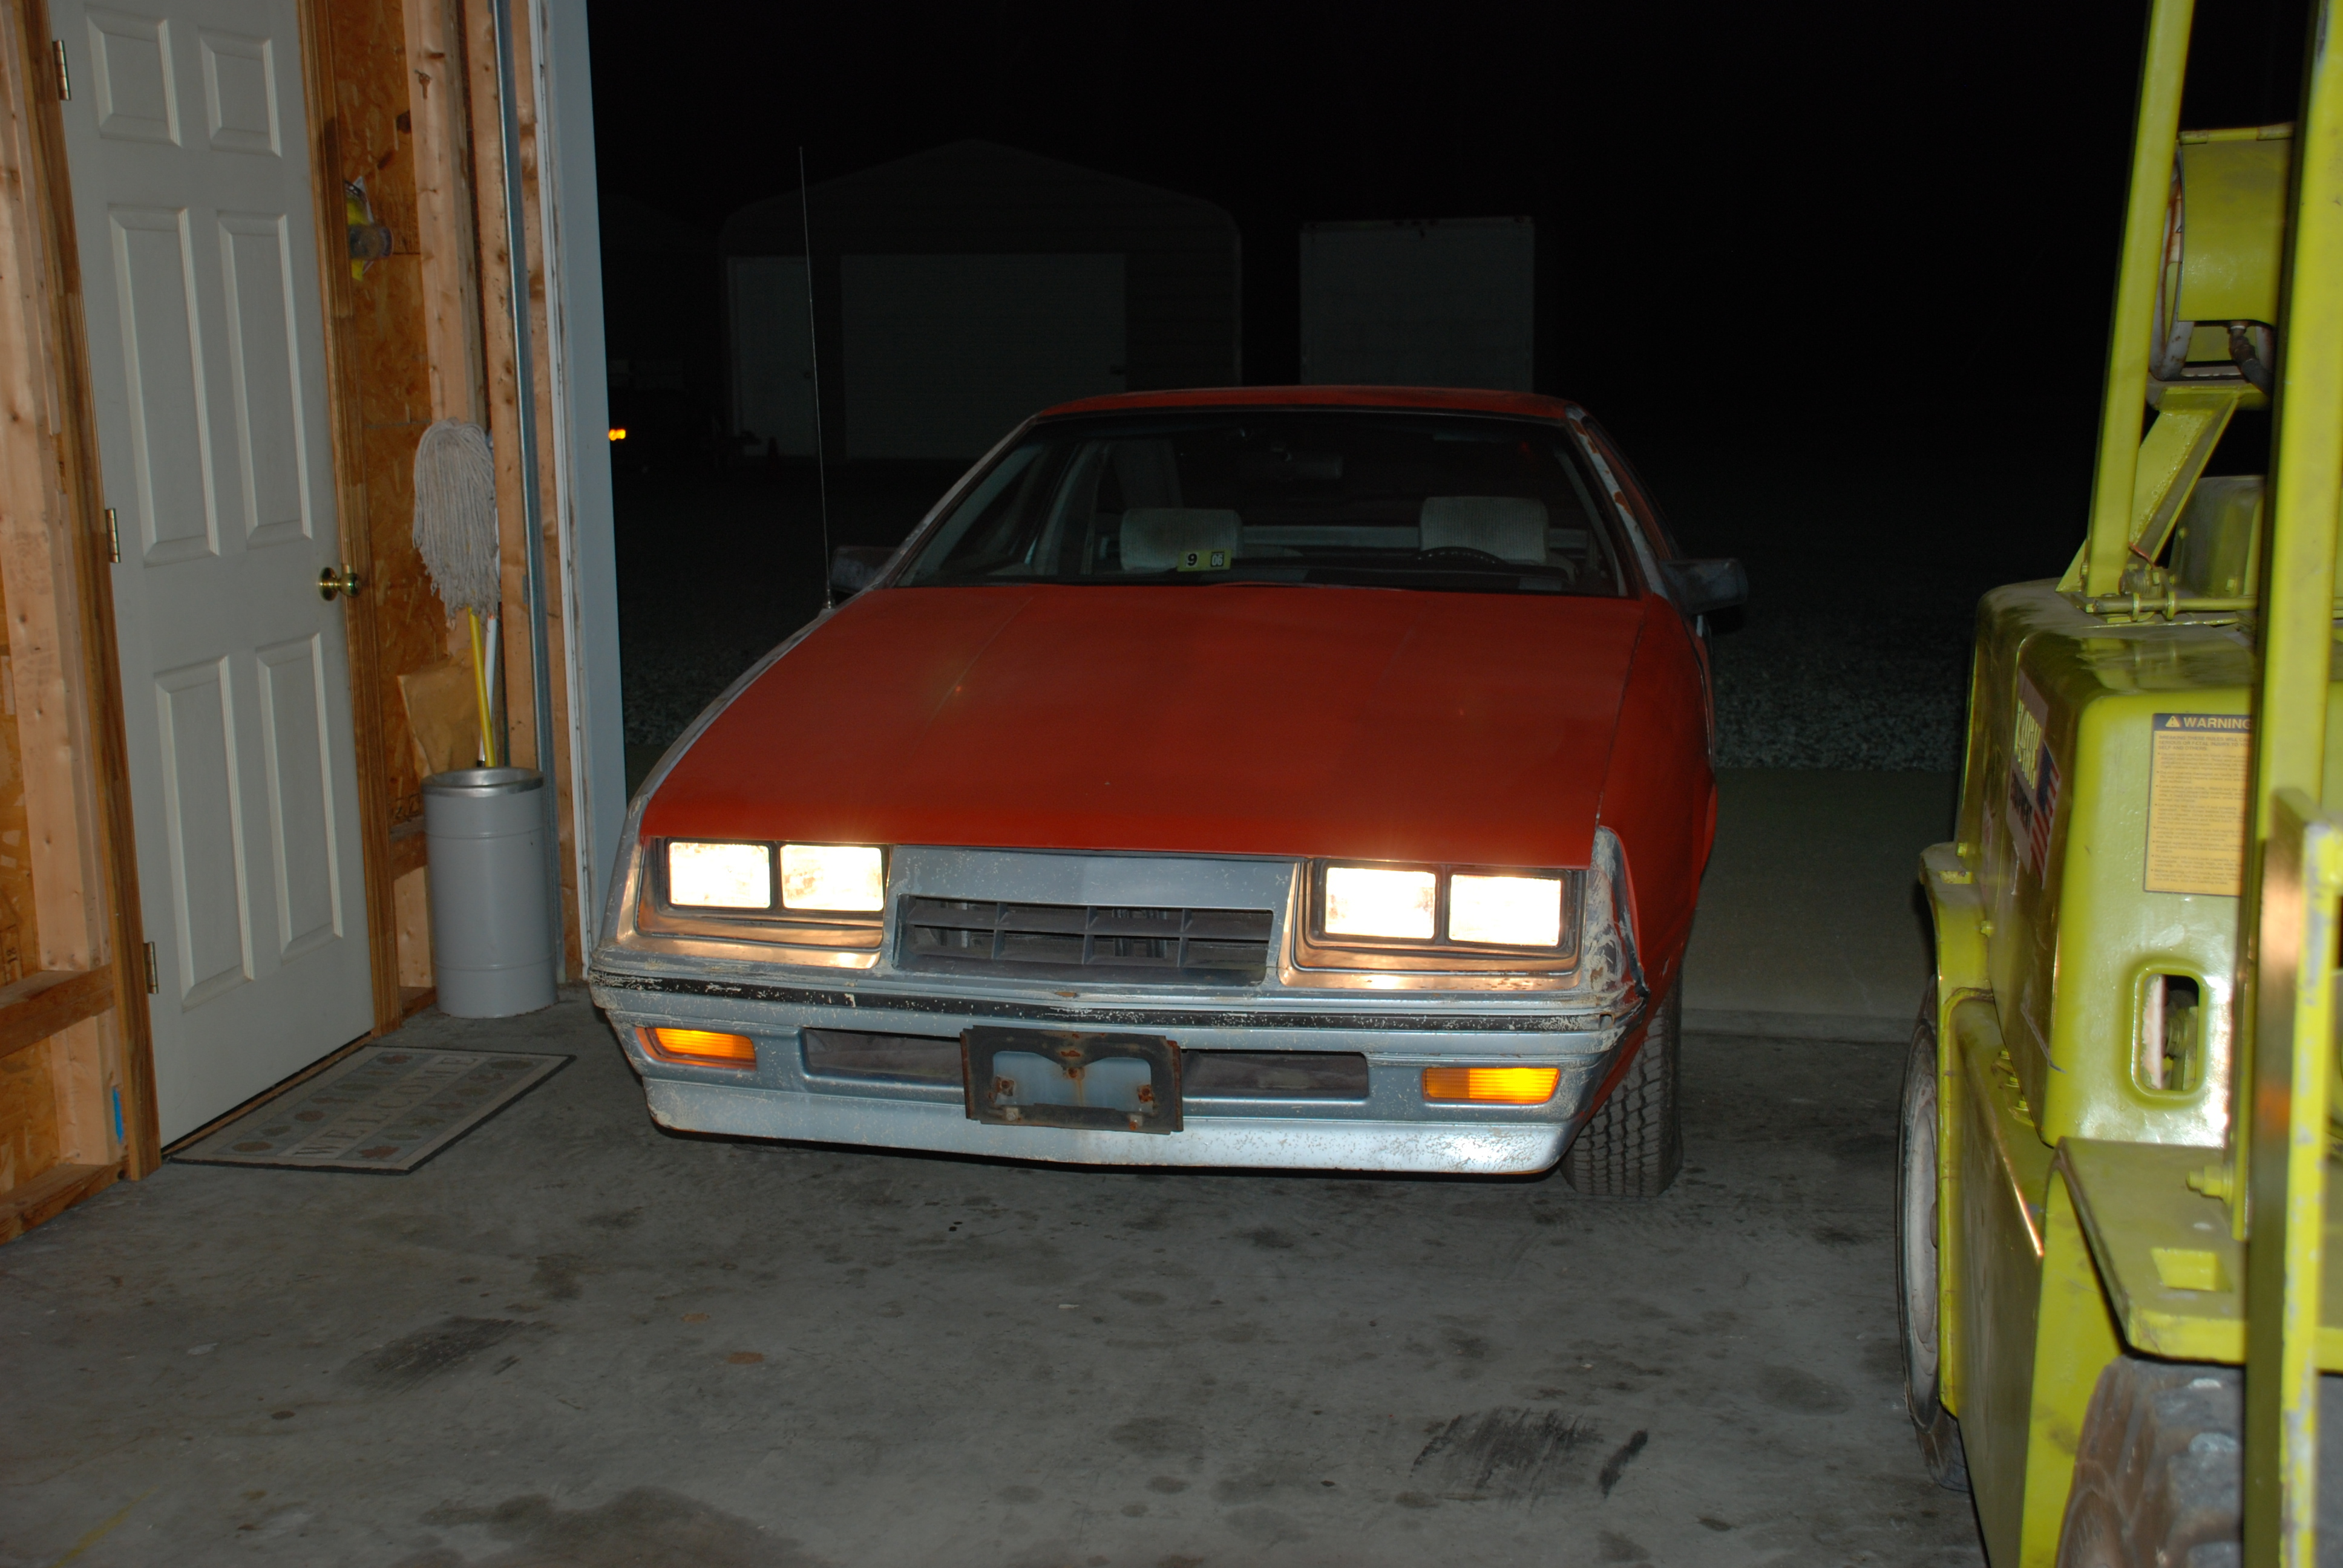 86-5speed's 1986 Chrysler Laser